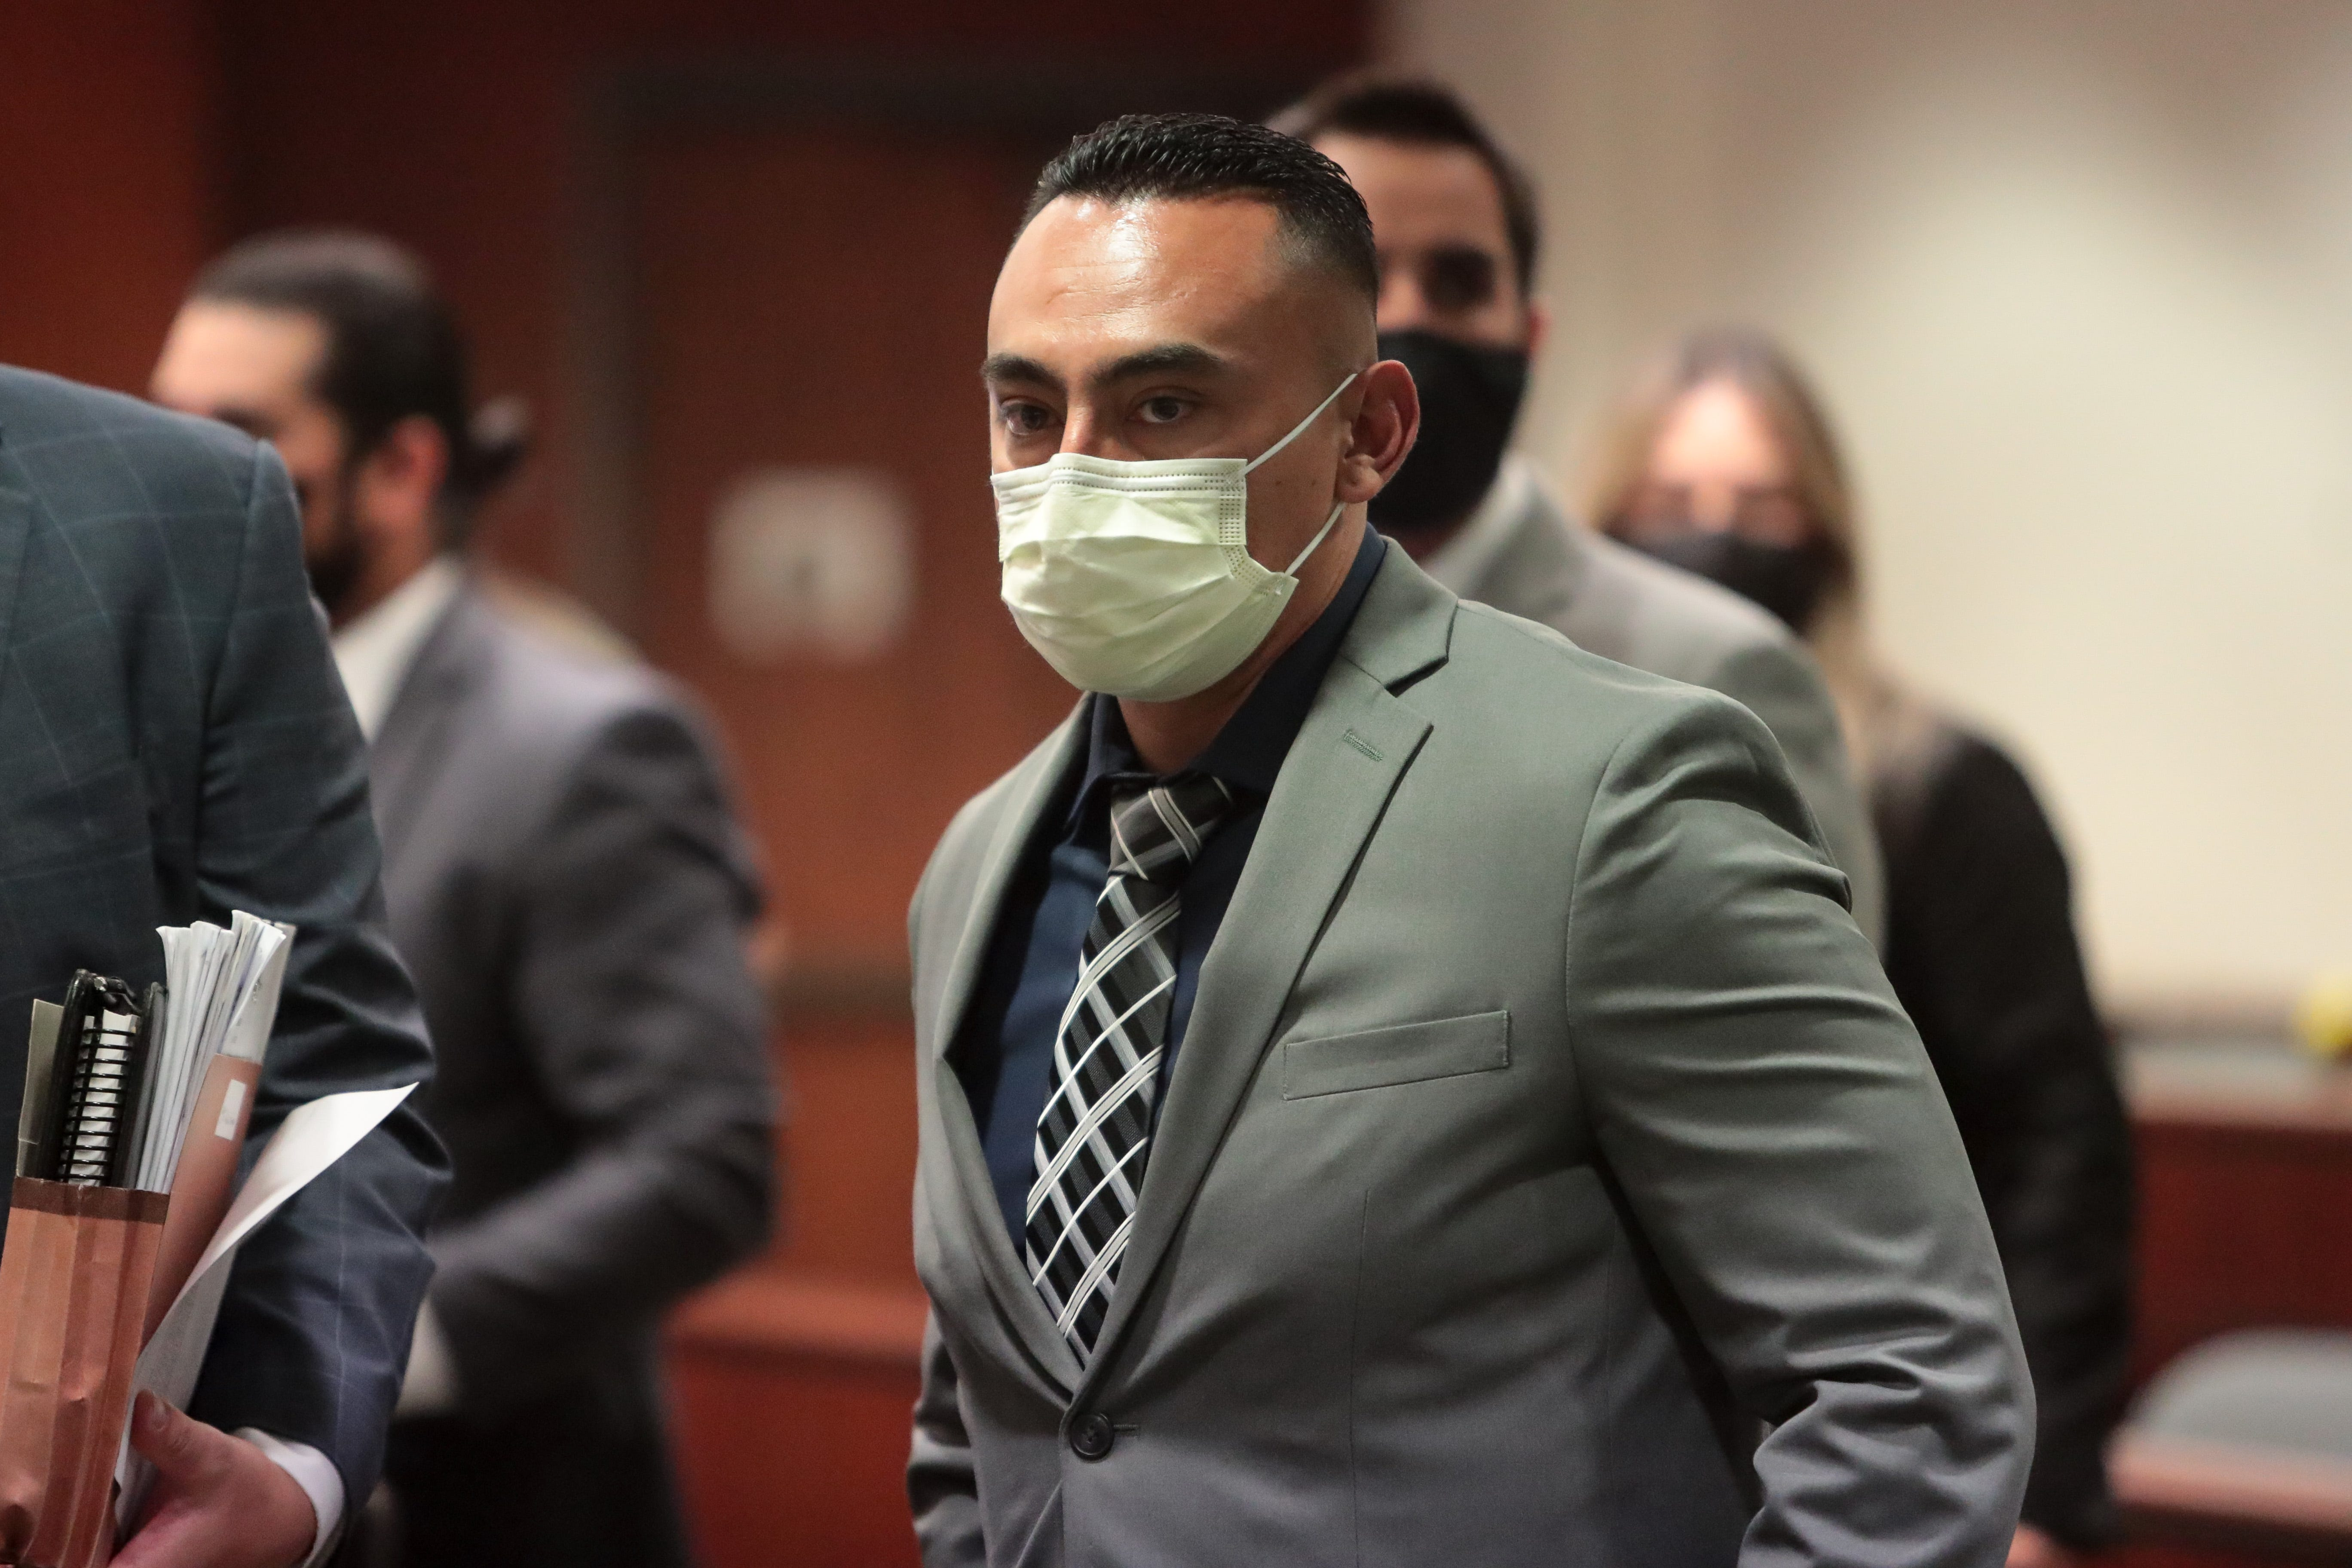 Oscar Rodriguez appears in court on March 4, 2021, at Larson Justice Hall in Indio.